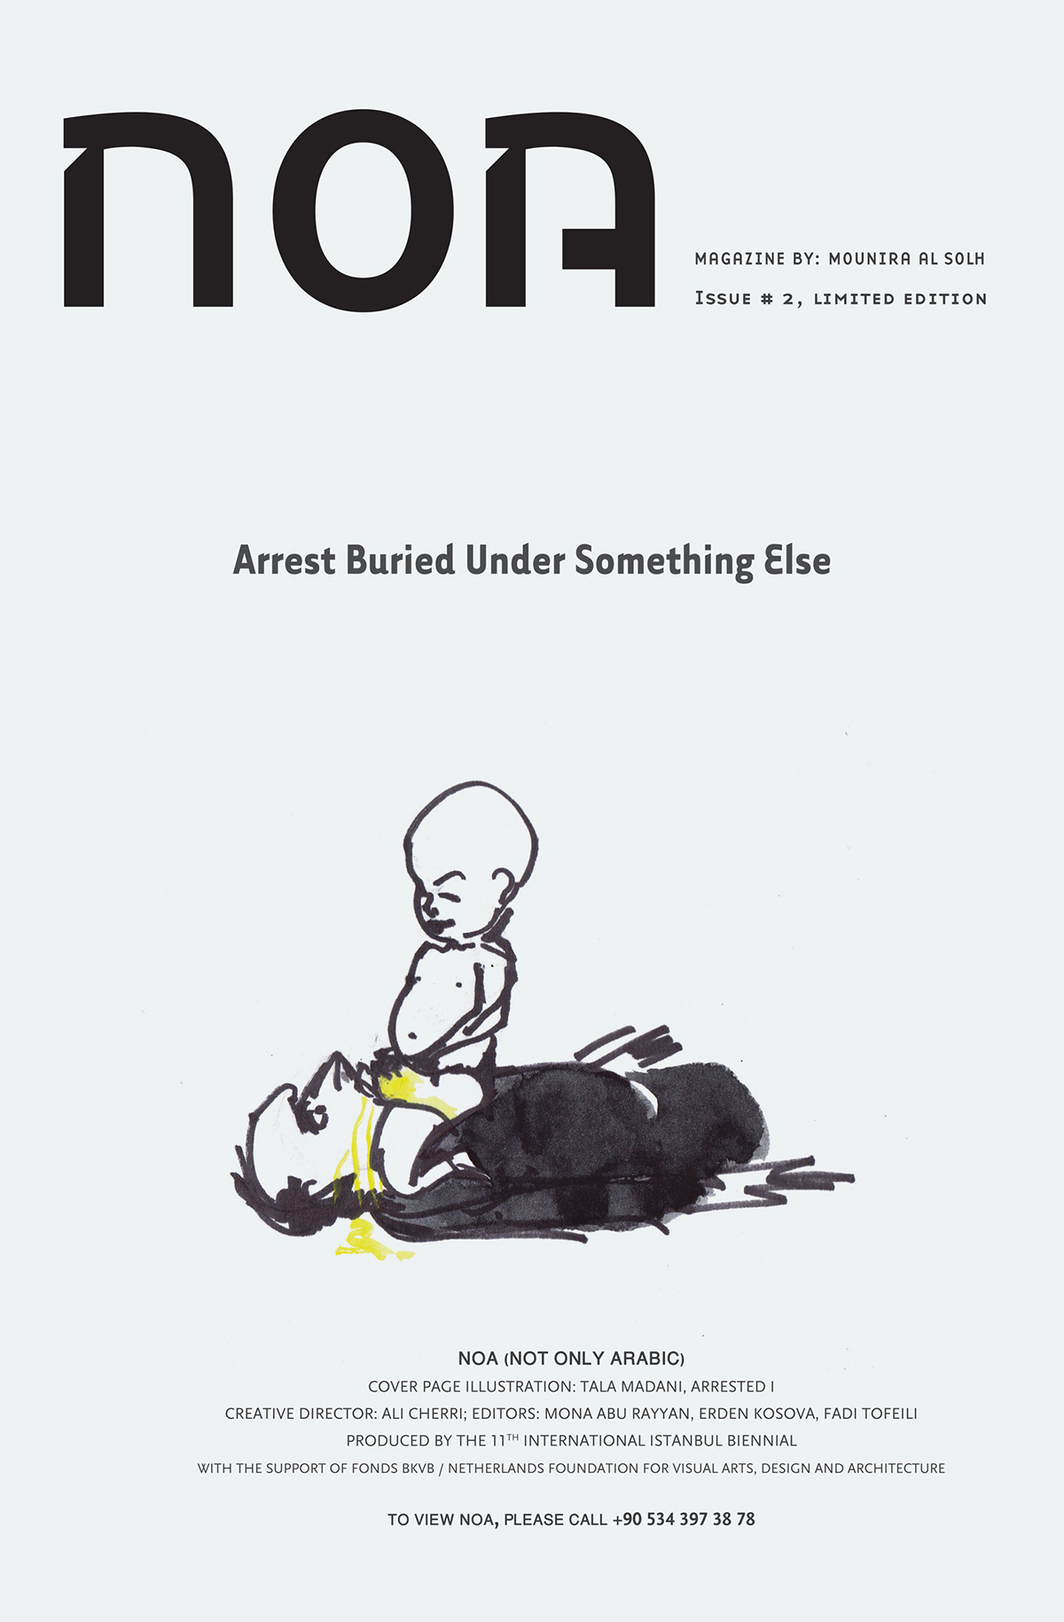 Mounira Al Solh, cover of NOA (Not Only Arabic), 2009. Illustration by Tala Madani, Arrested I.